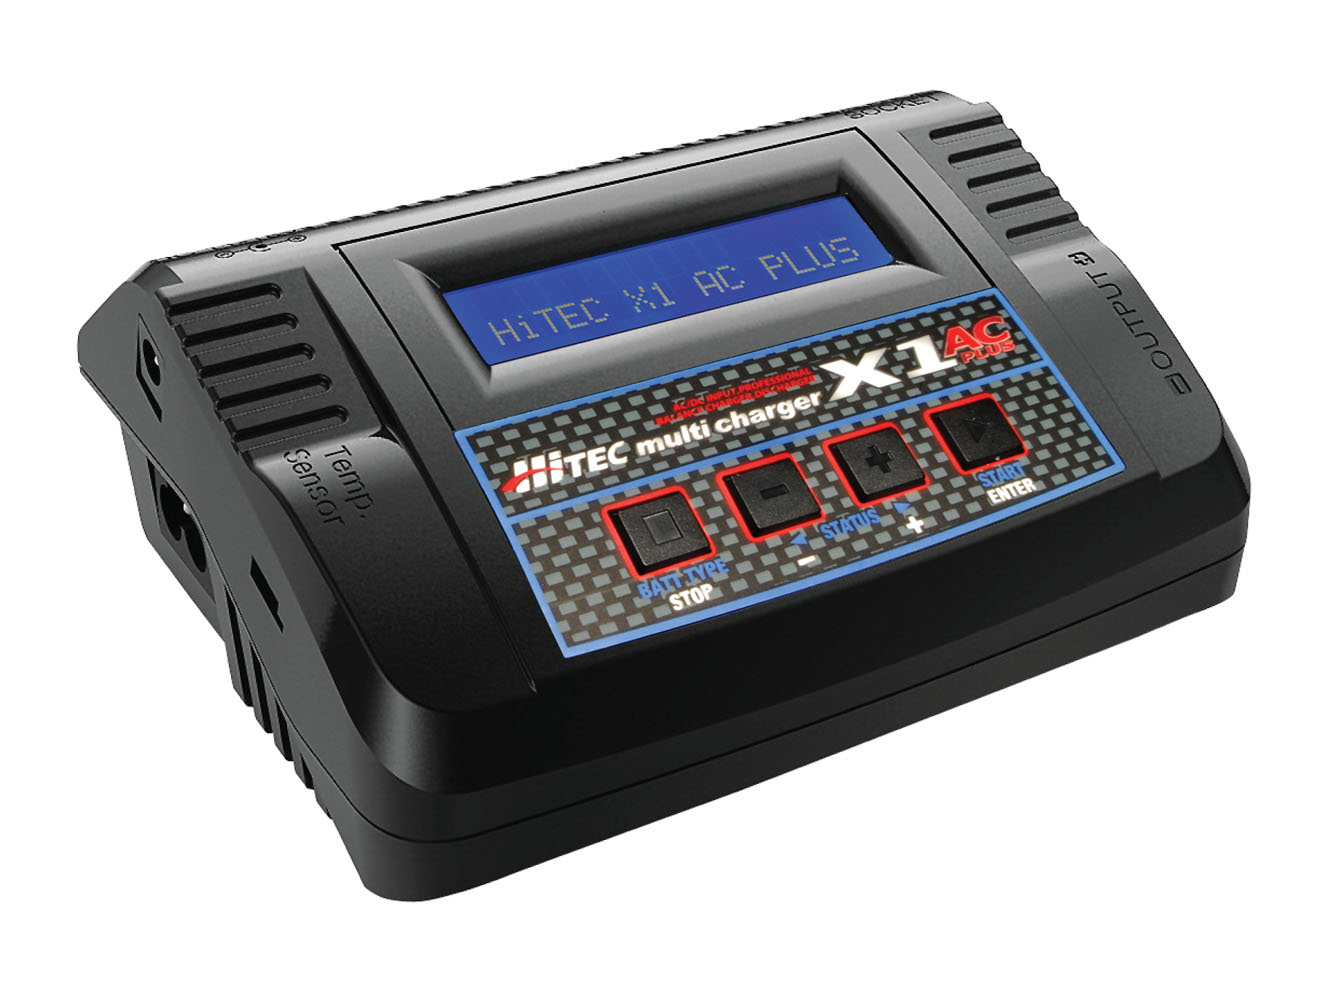 X1 AC Plus battery charger from Hitec